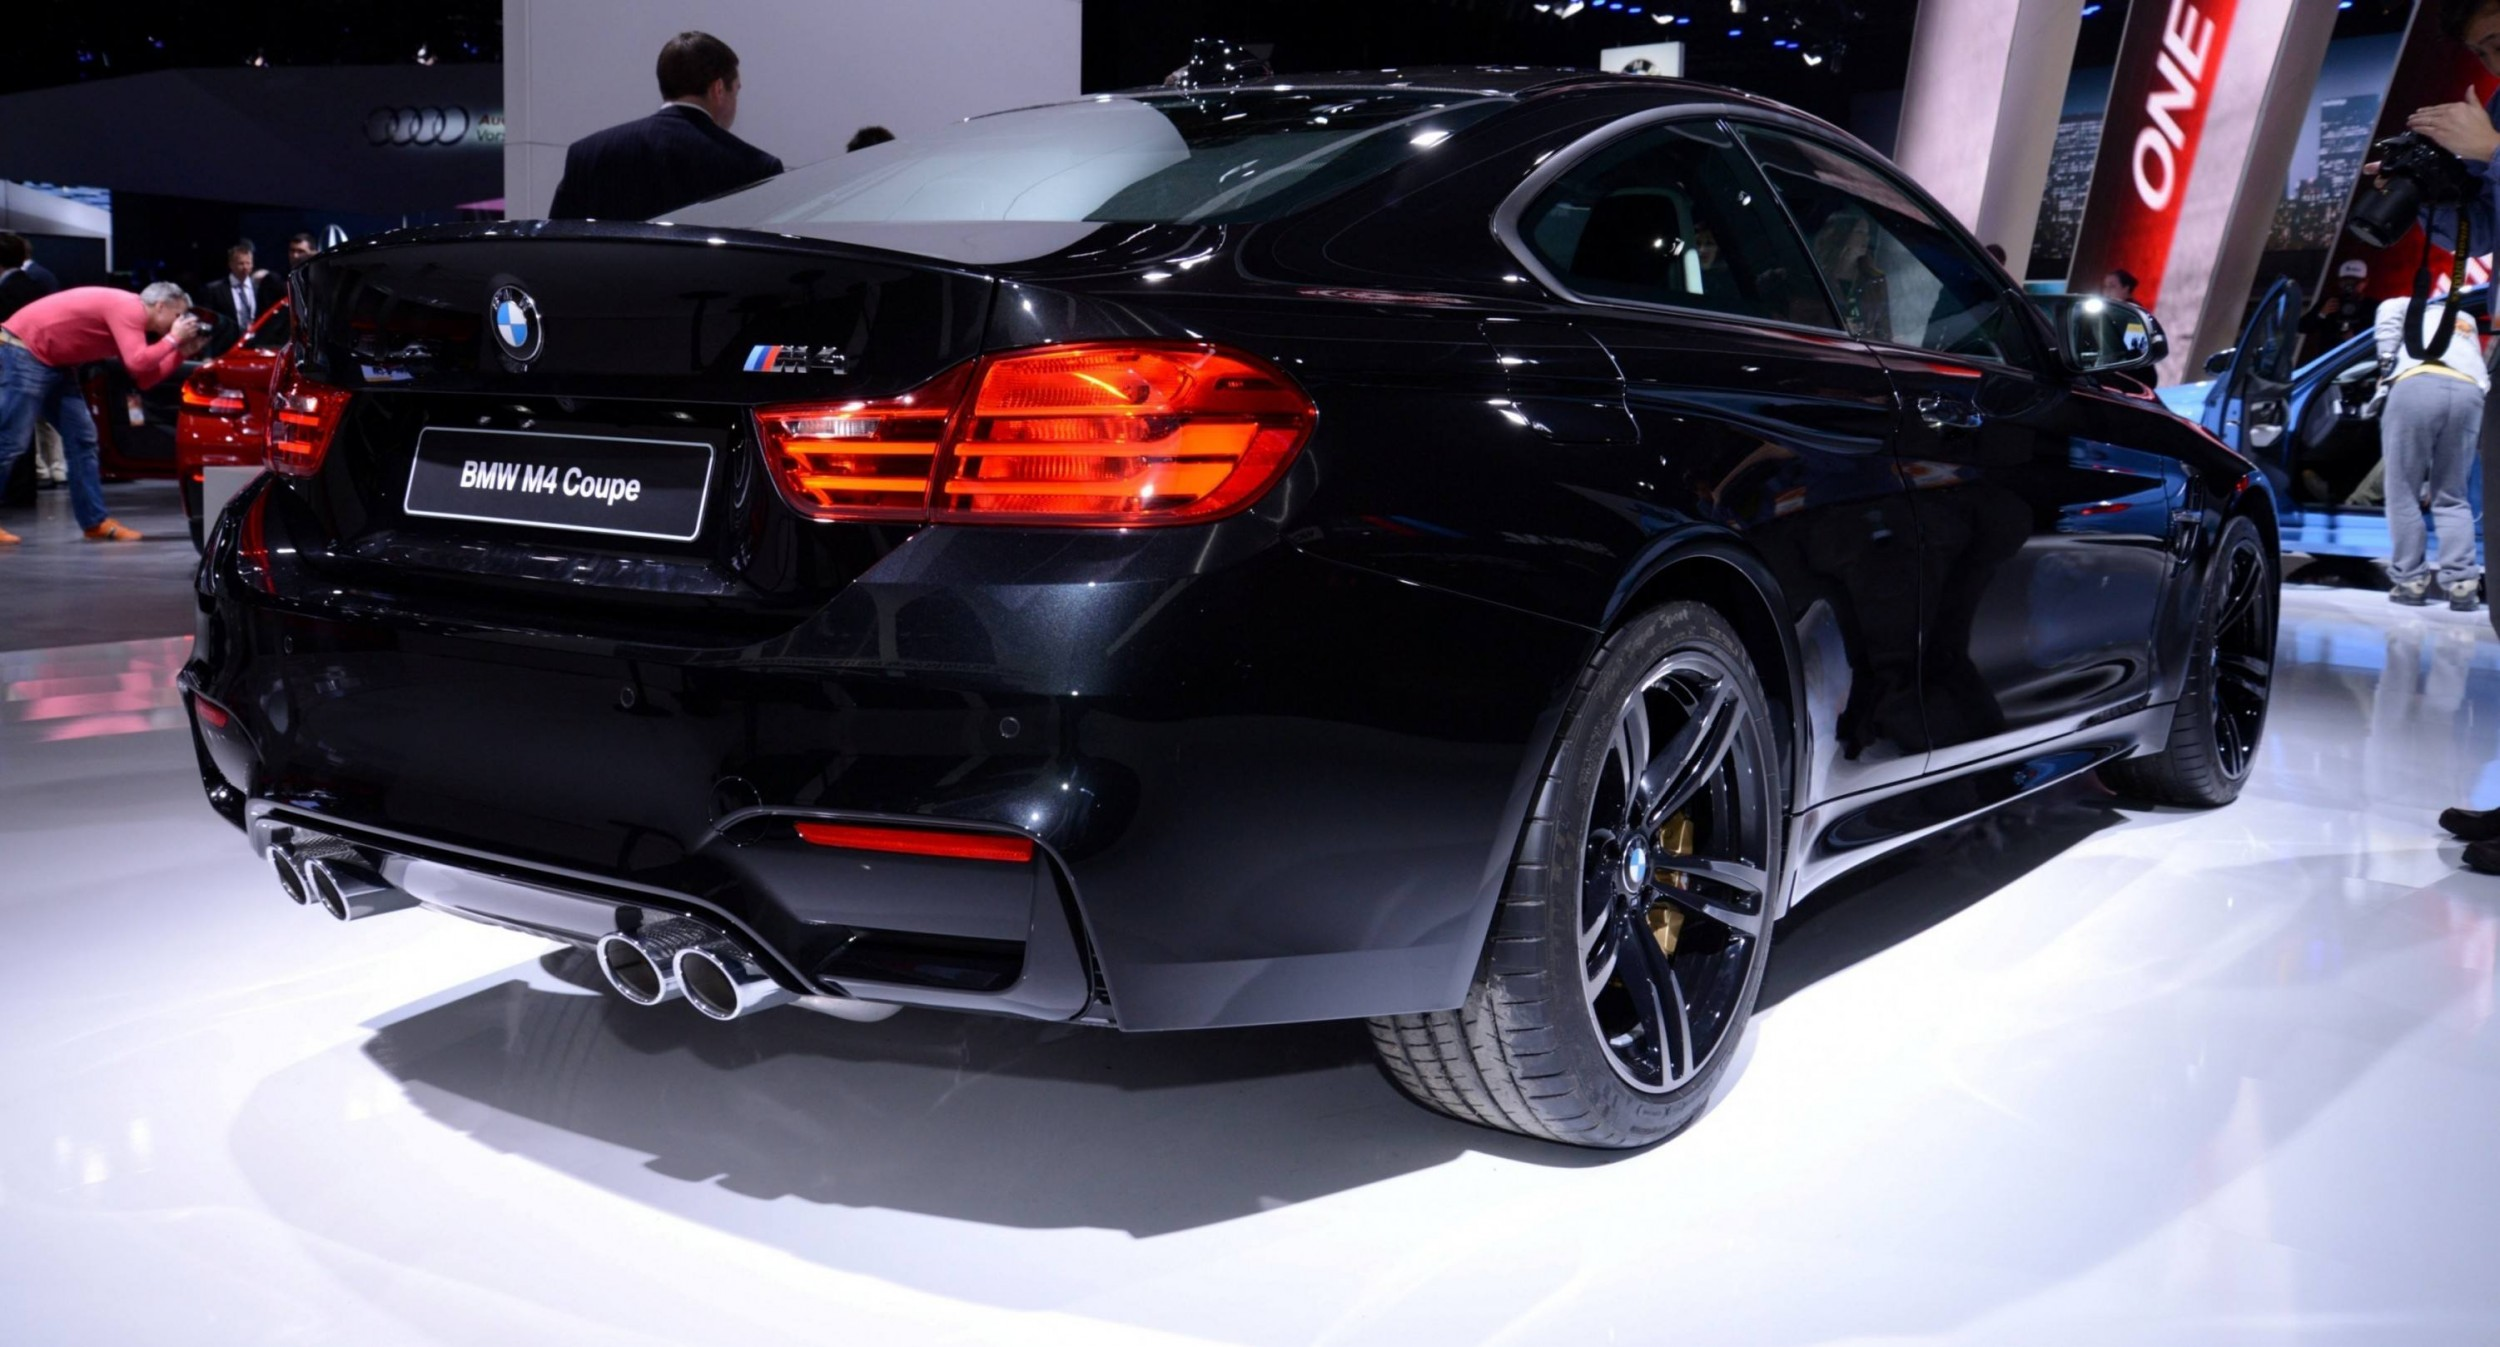 Update BMW M Coupe And M Sedan Technical Video Photos - 2014 bmw m4 msrp